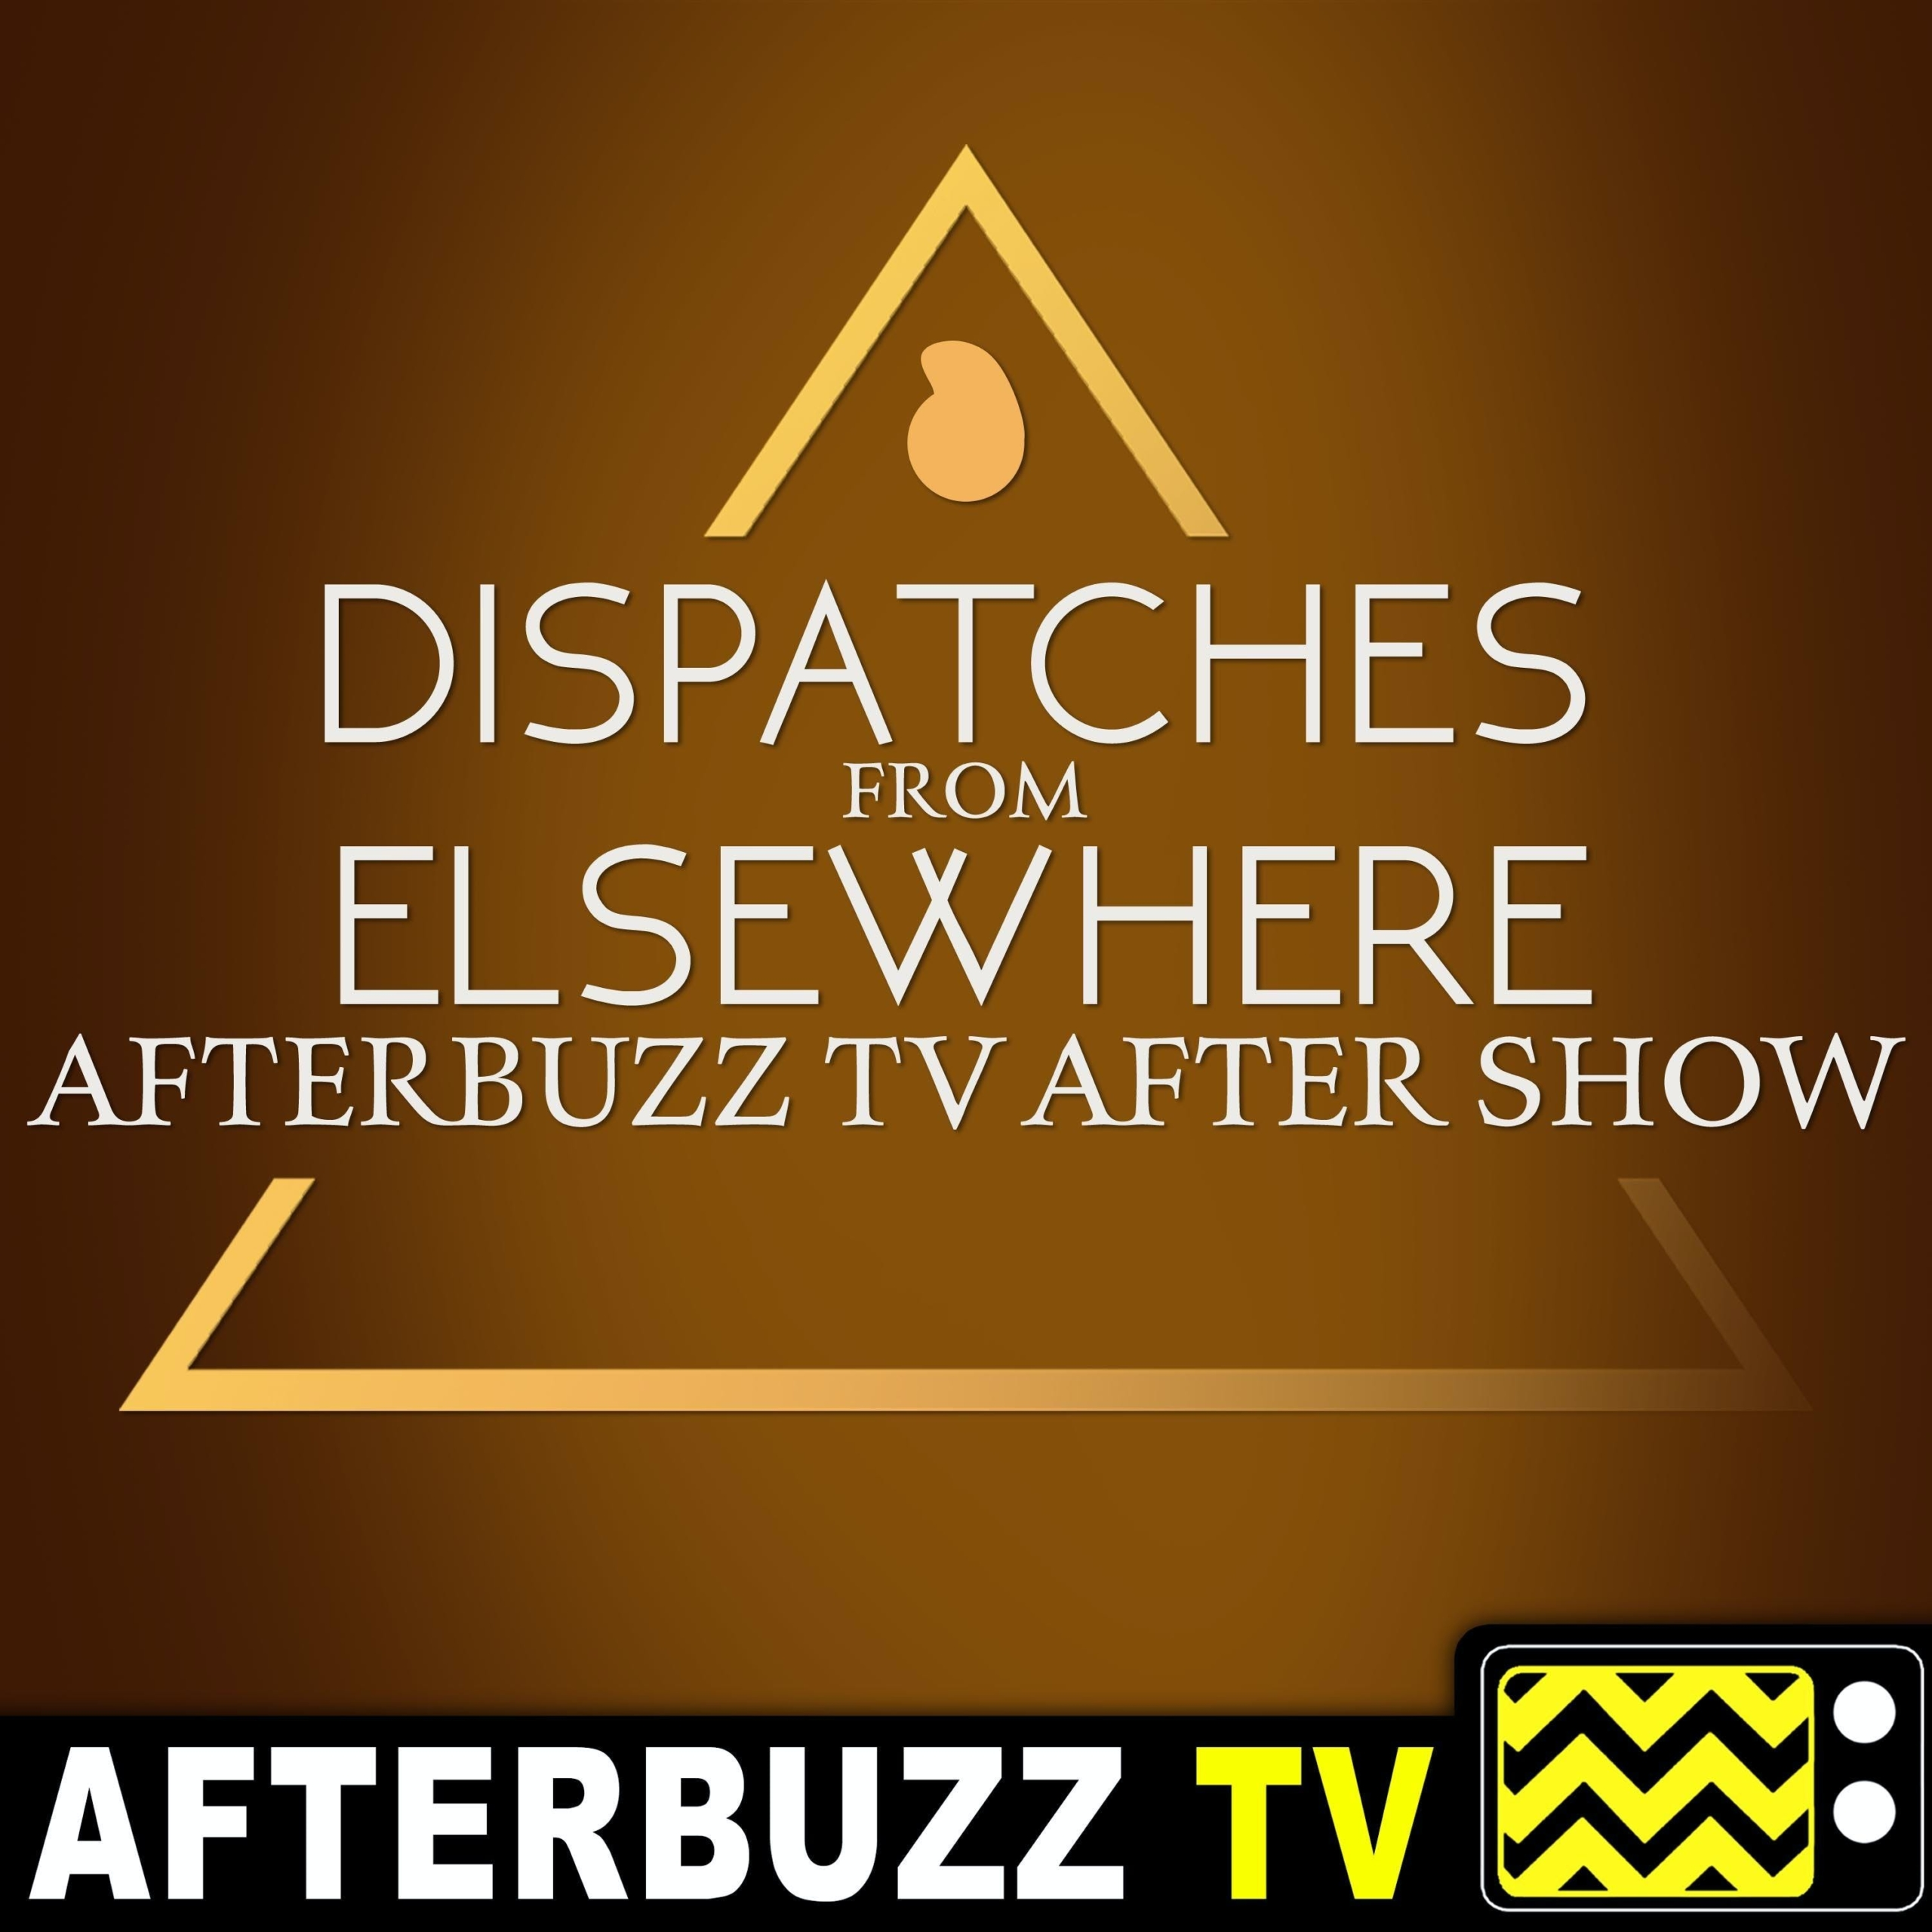 Dispatches From Elsewhere S1 E10 Recap & After Show: Dispatches From Elsewhere Shatters the Fourth Wall